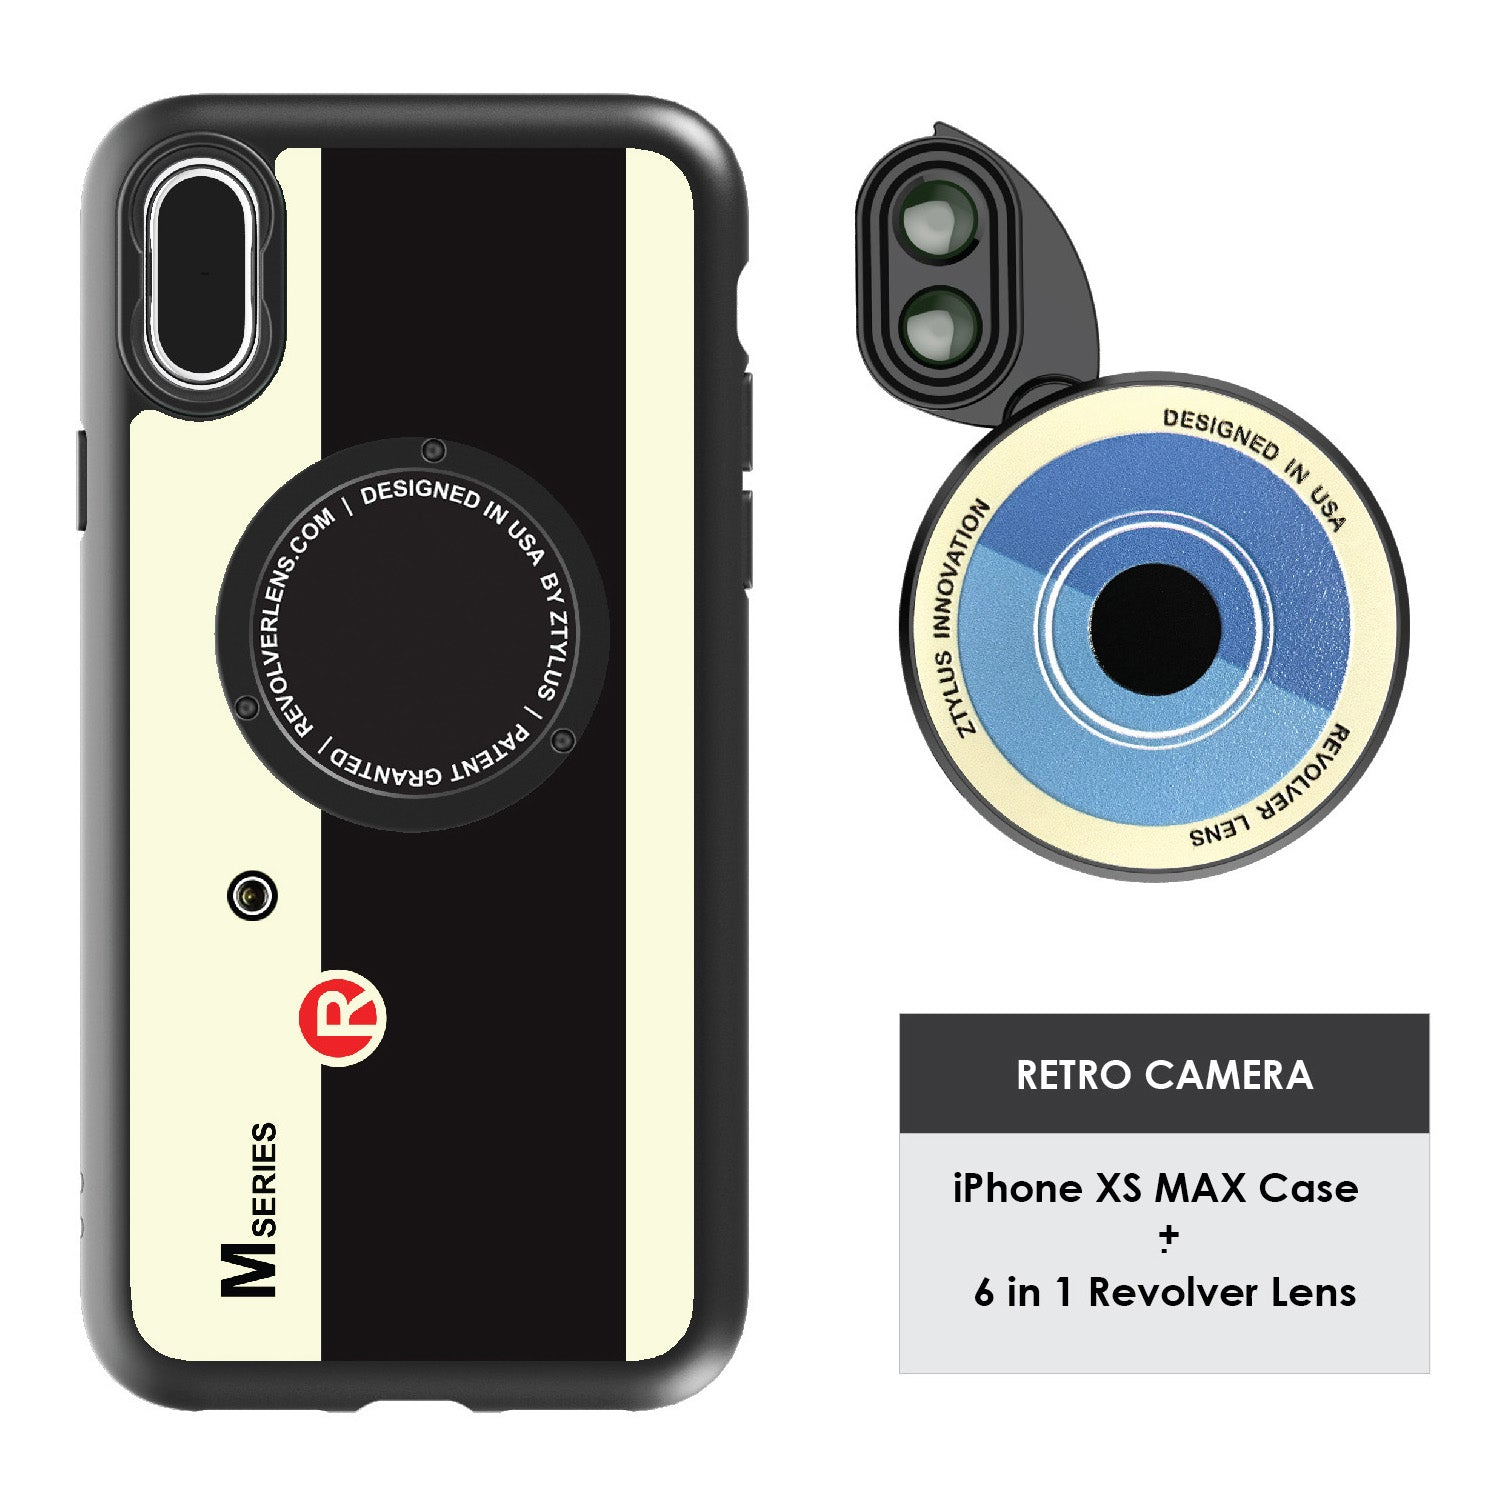 iPhone Xs Max Revolver M Series Lens Kit - Retro Camera